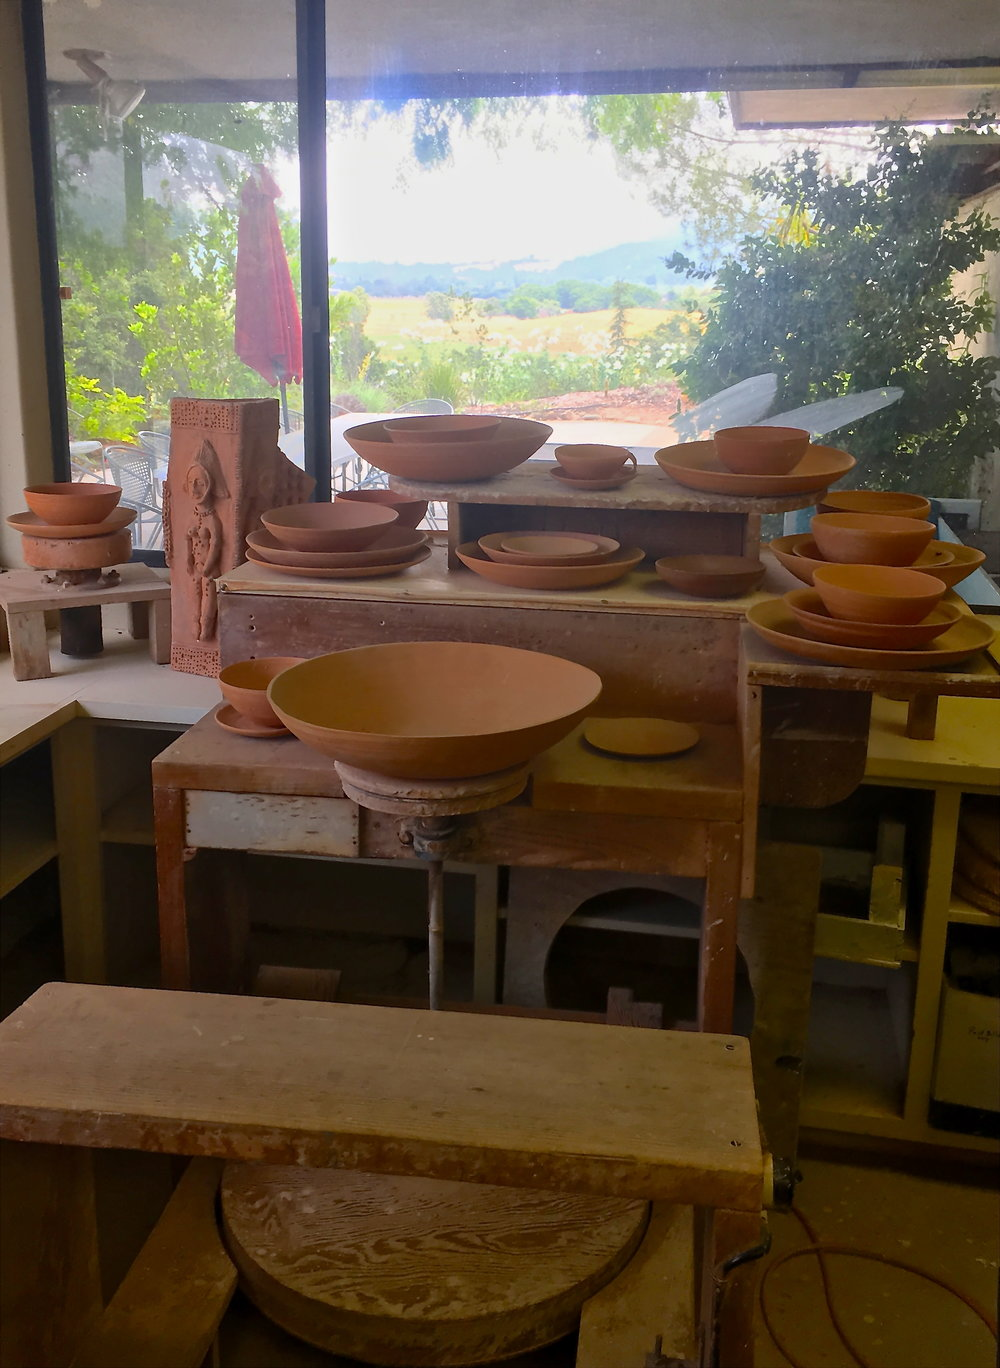 Beatrice Wood's wheel overlooking Happy Valley remains idle with her last pots surrounding it, which remains an inspiration to all who visit or get the privilege to work in her studio.  -